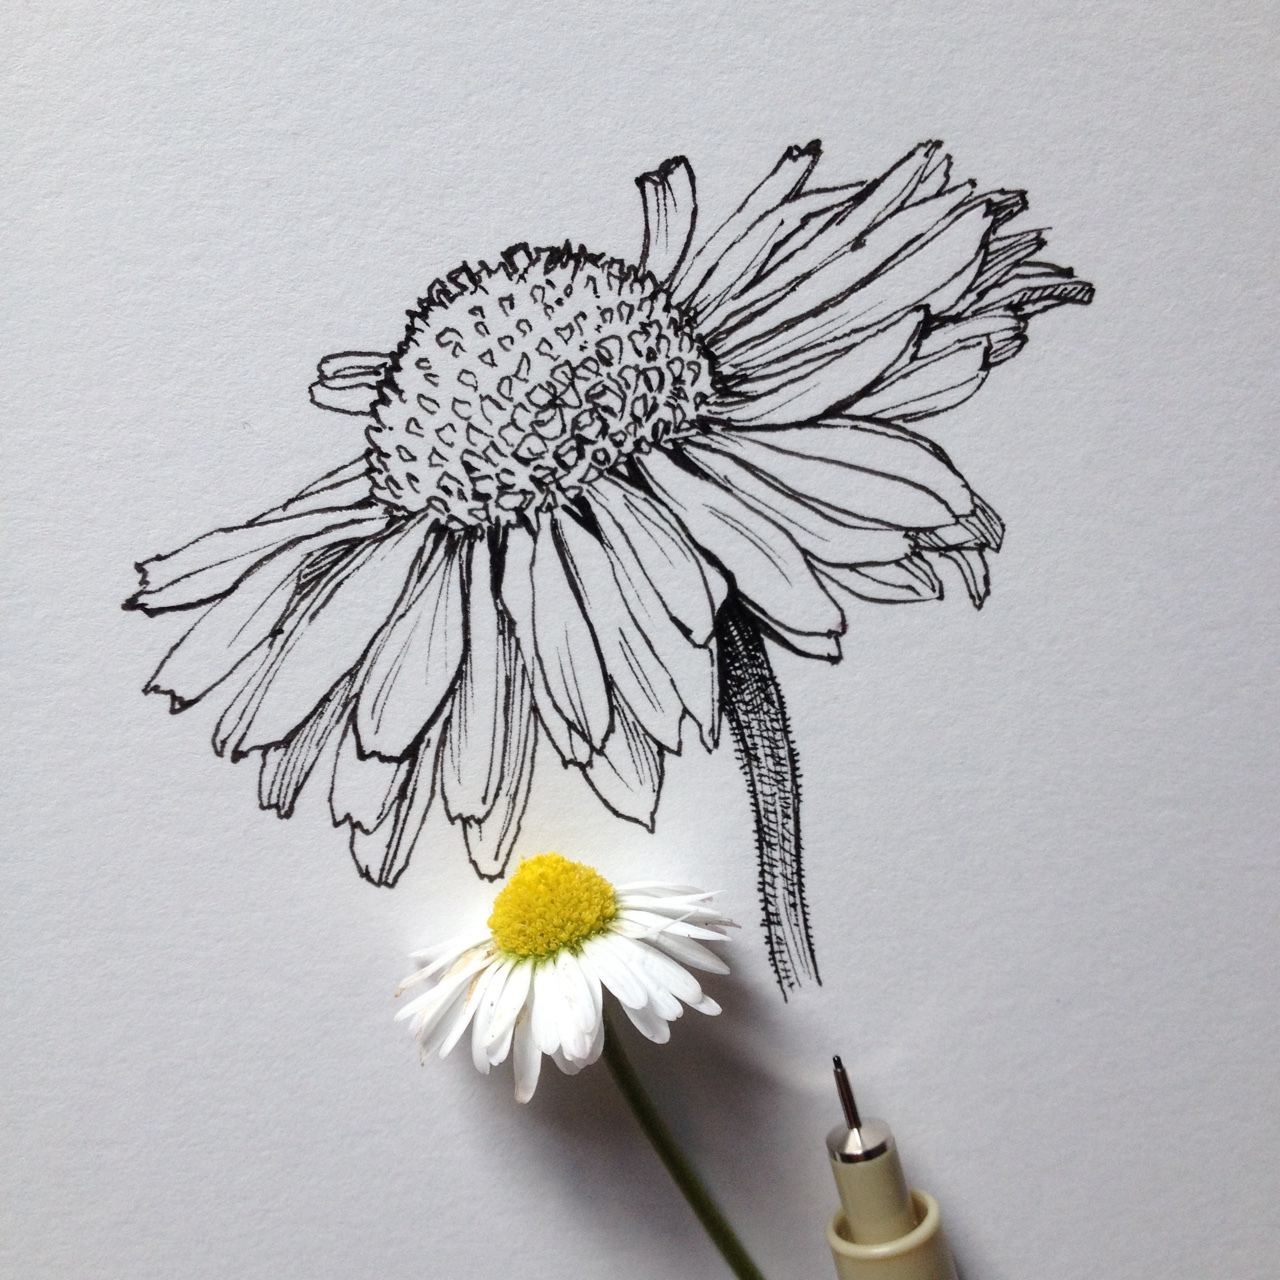 Eletragesi daisy tumblr drawing images daisy tumblr drawing izmirmasajfo